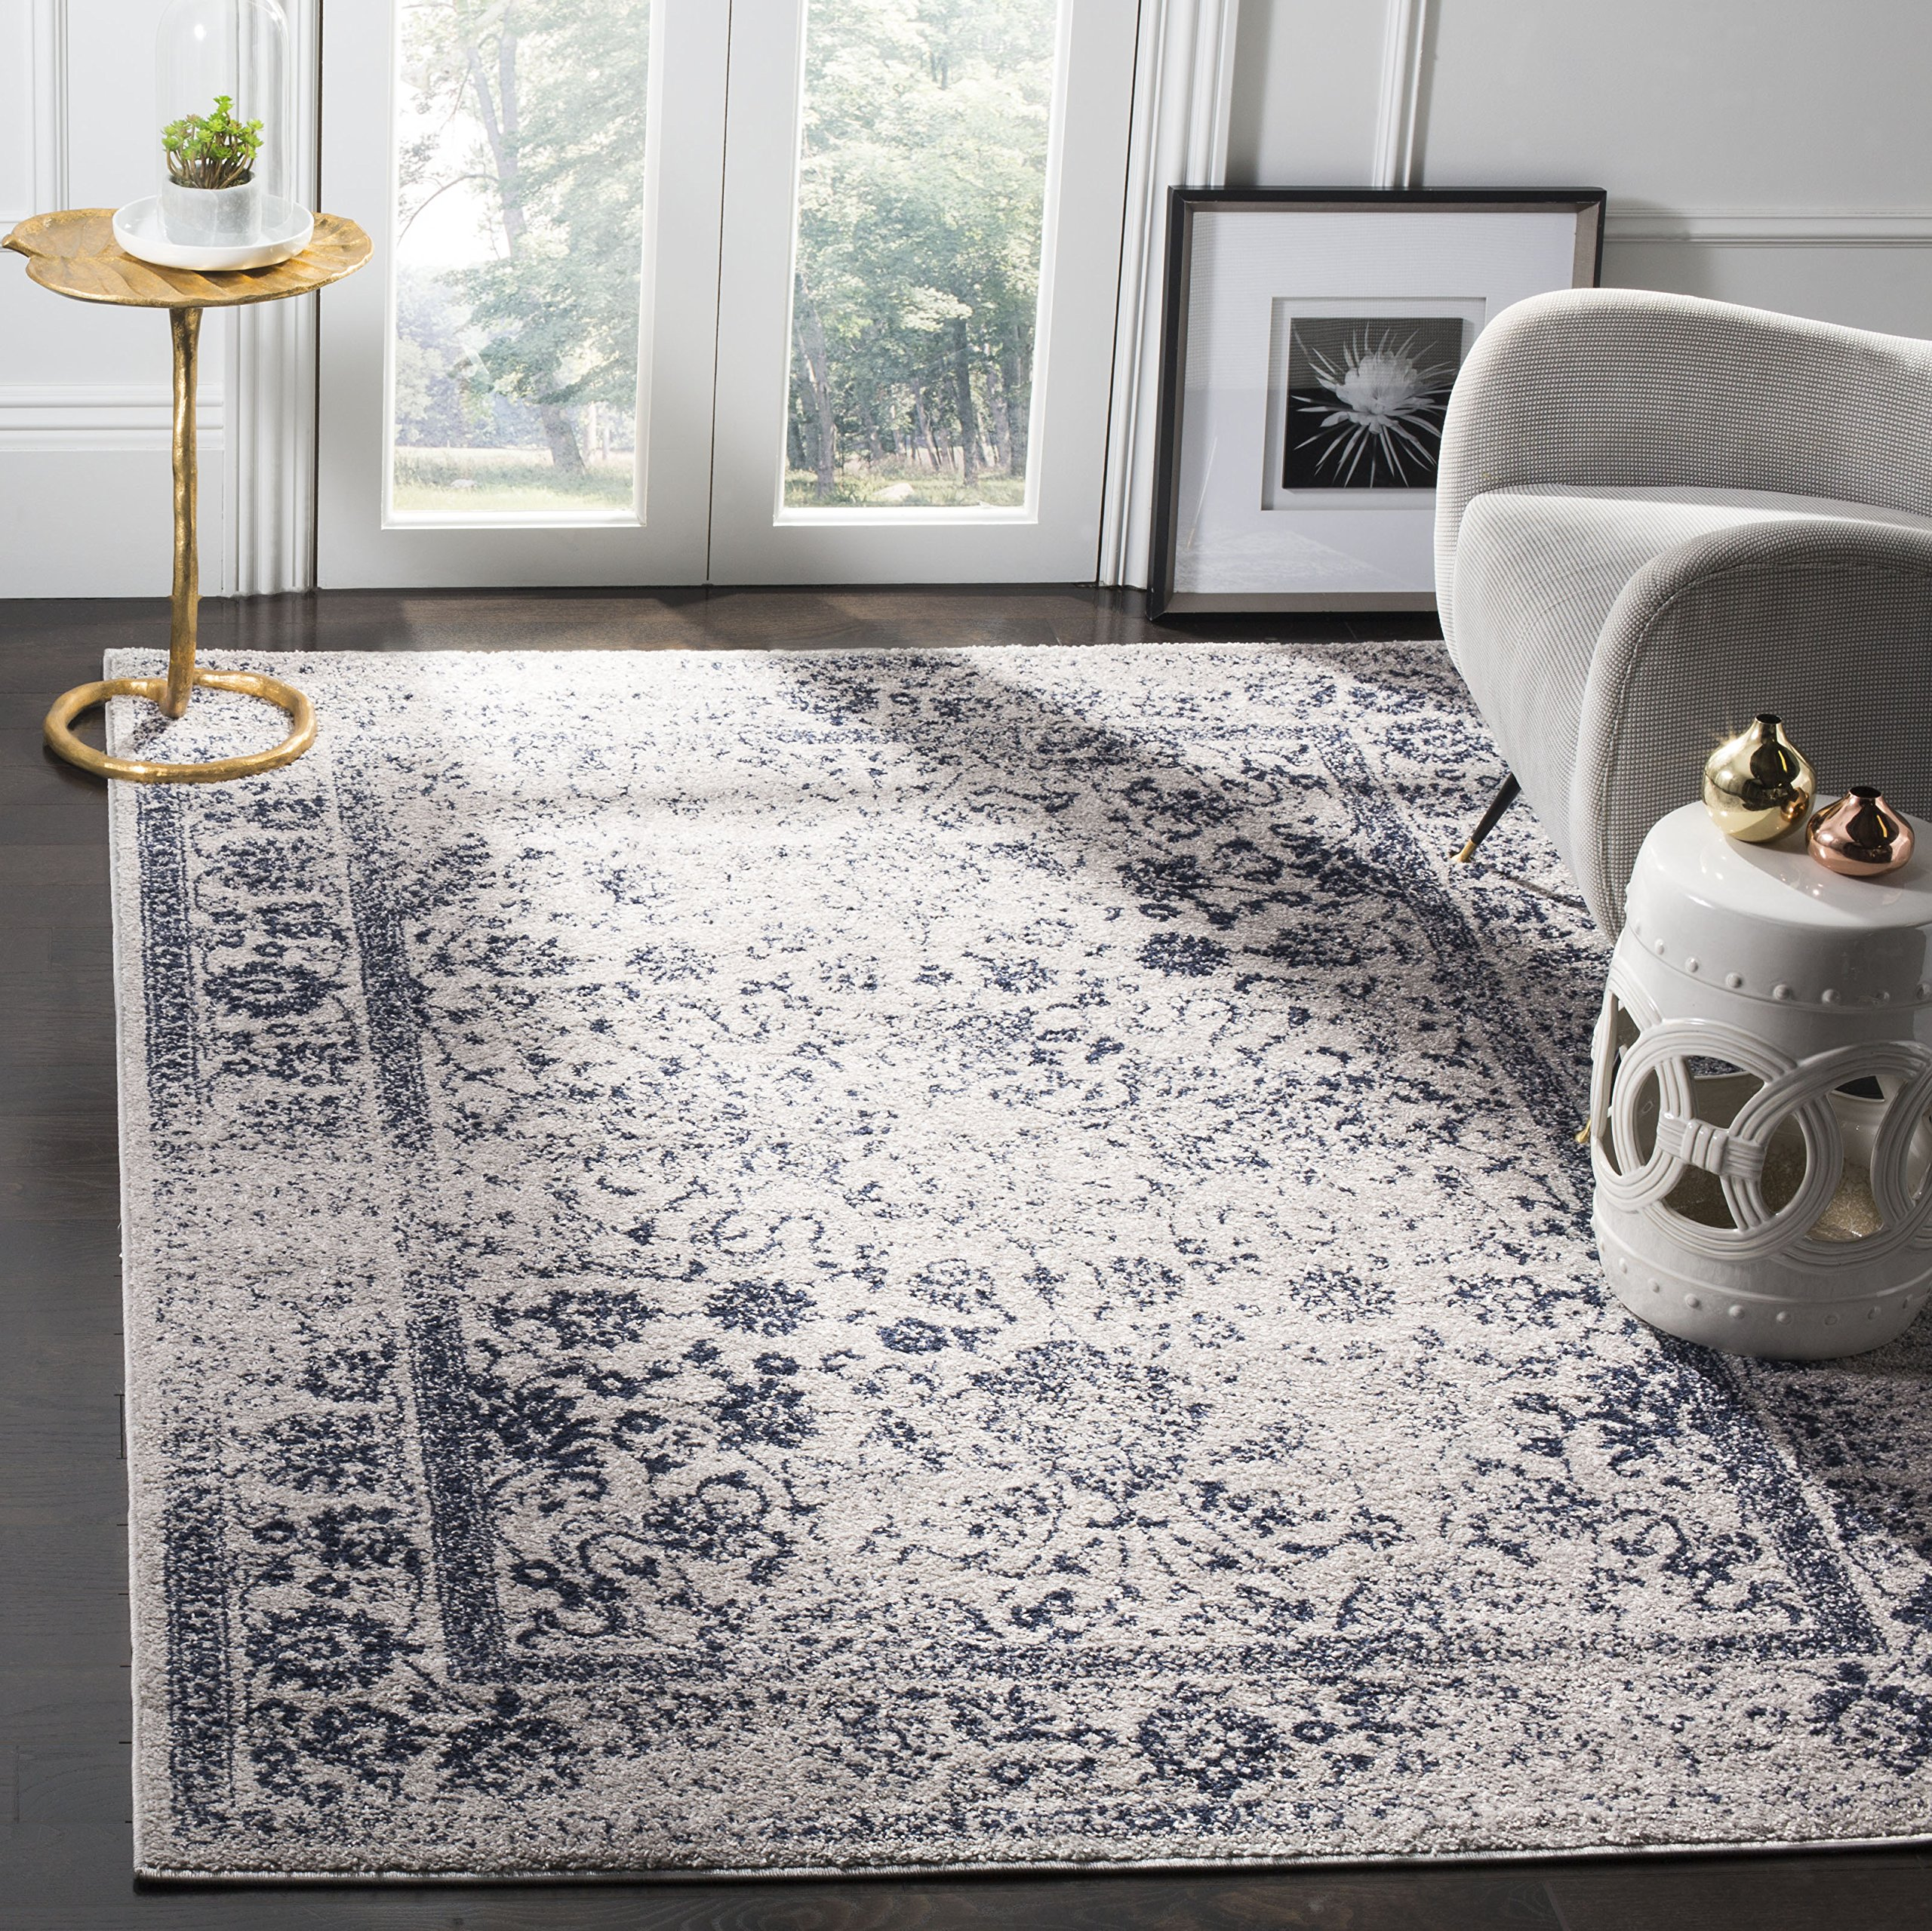 Safavieh Adirondack Collection ADR109P Grey and Navy Blue Oriental Vintage Distressed Area Rug (8' x 10) by Safavieh